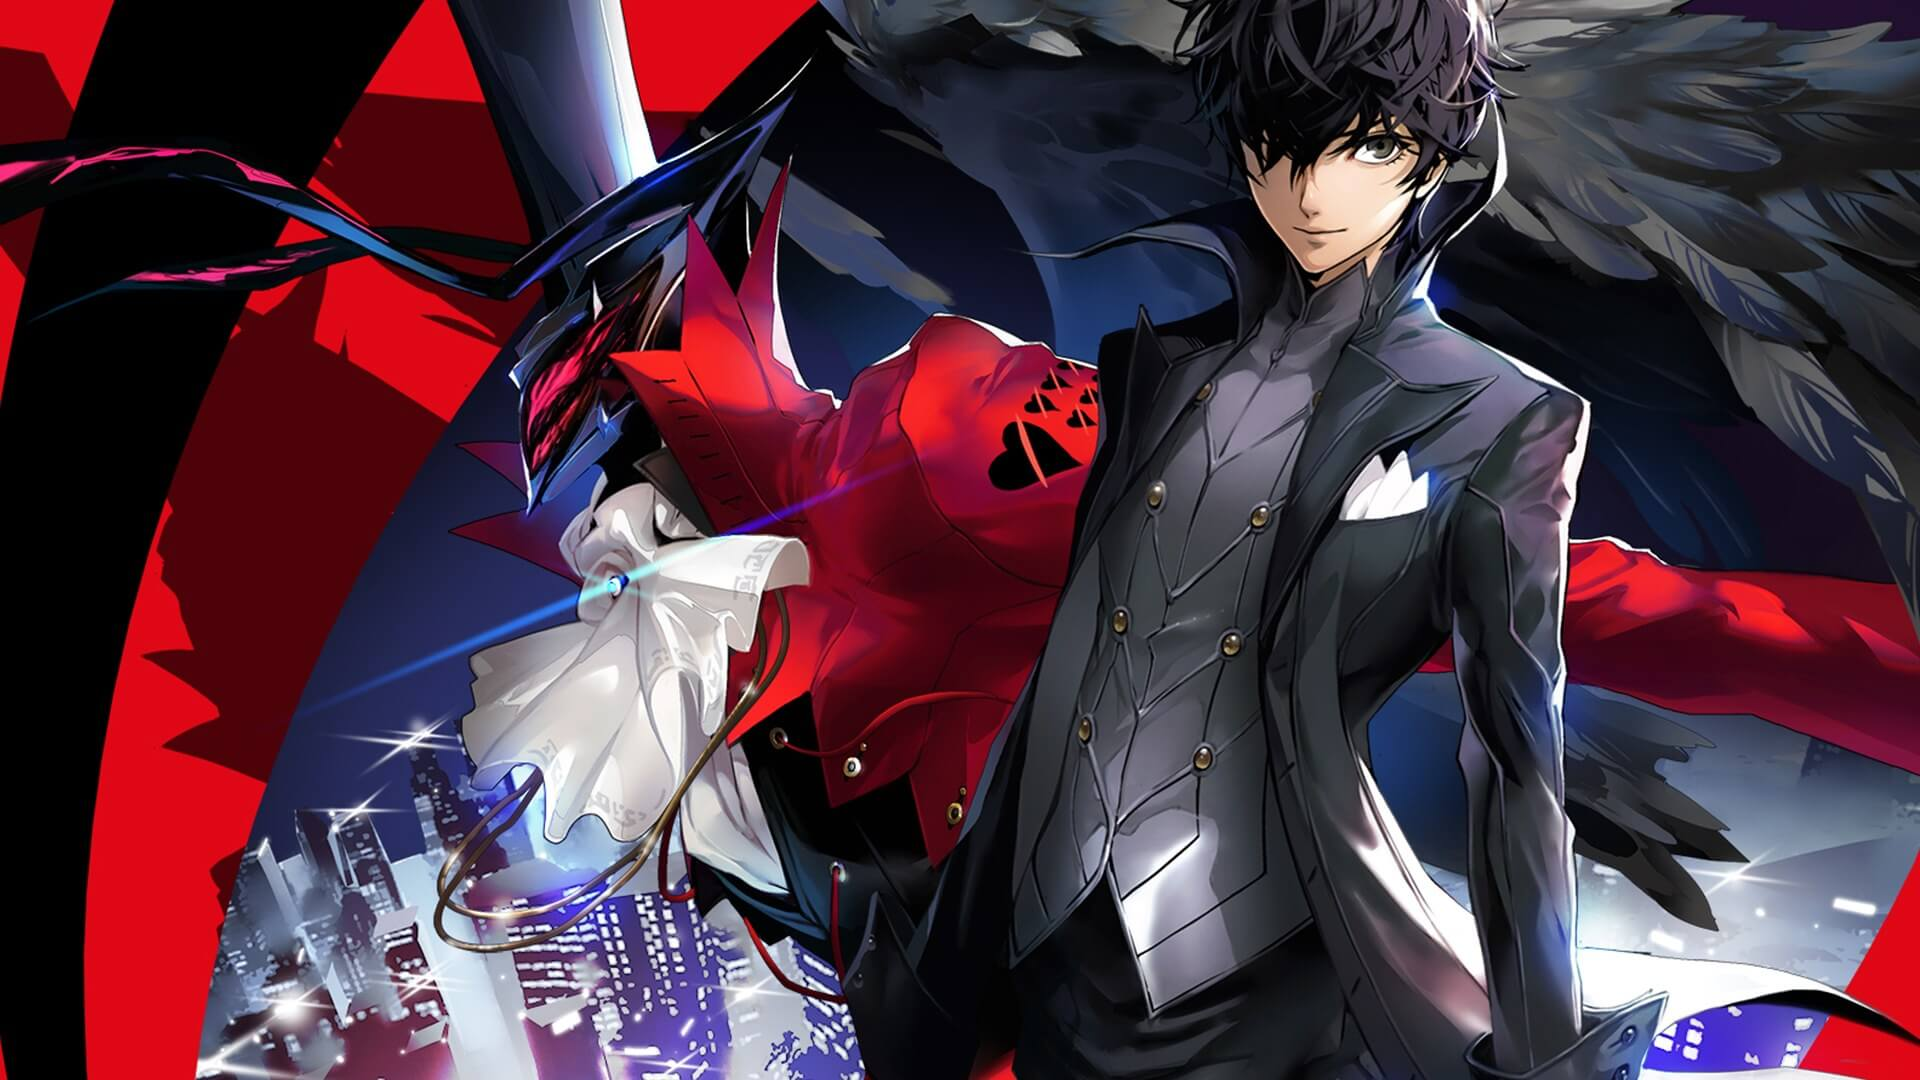 Persona 5: The Royal Coming To US And Asia In 2020